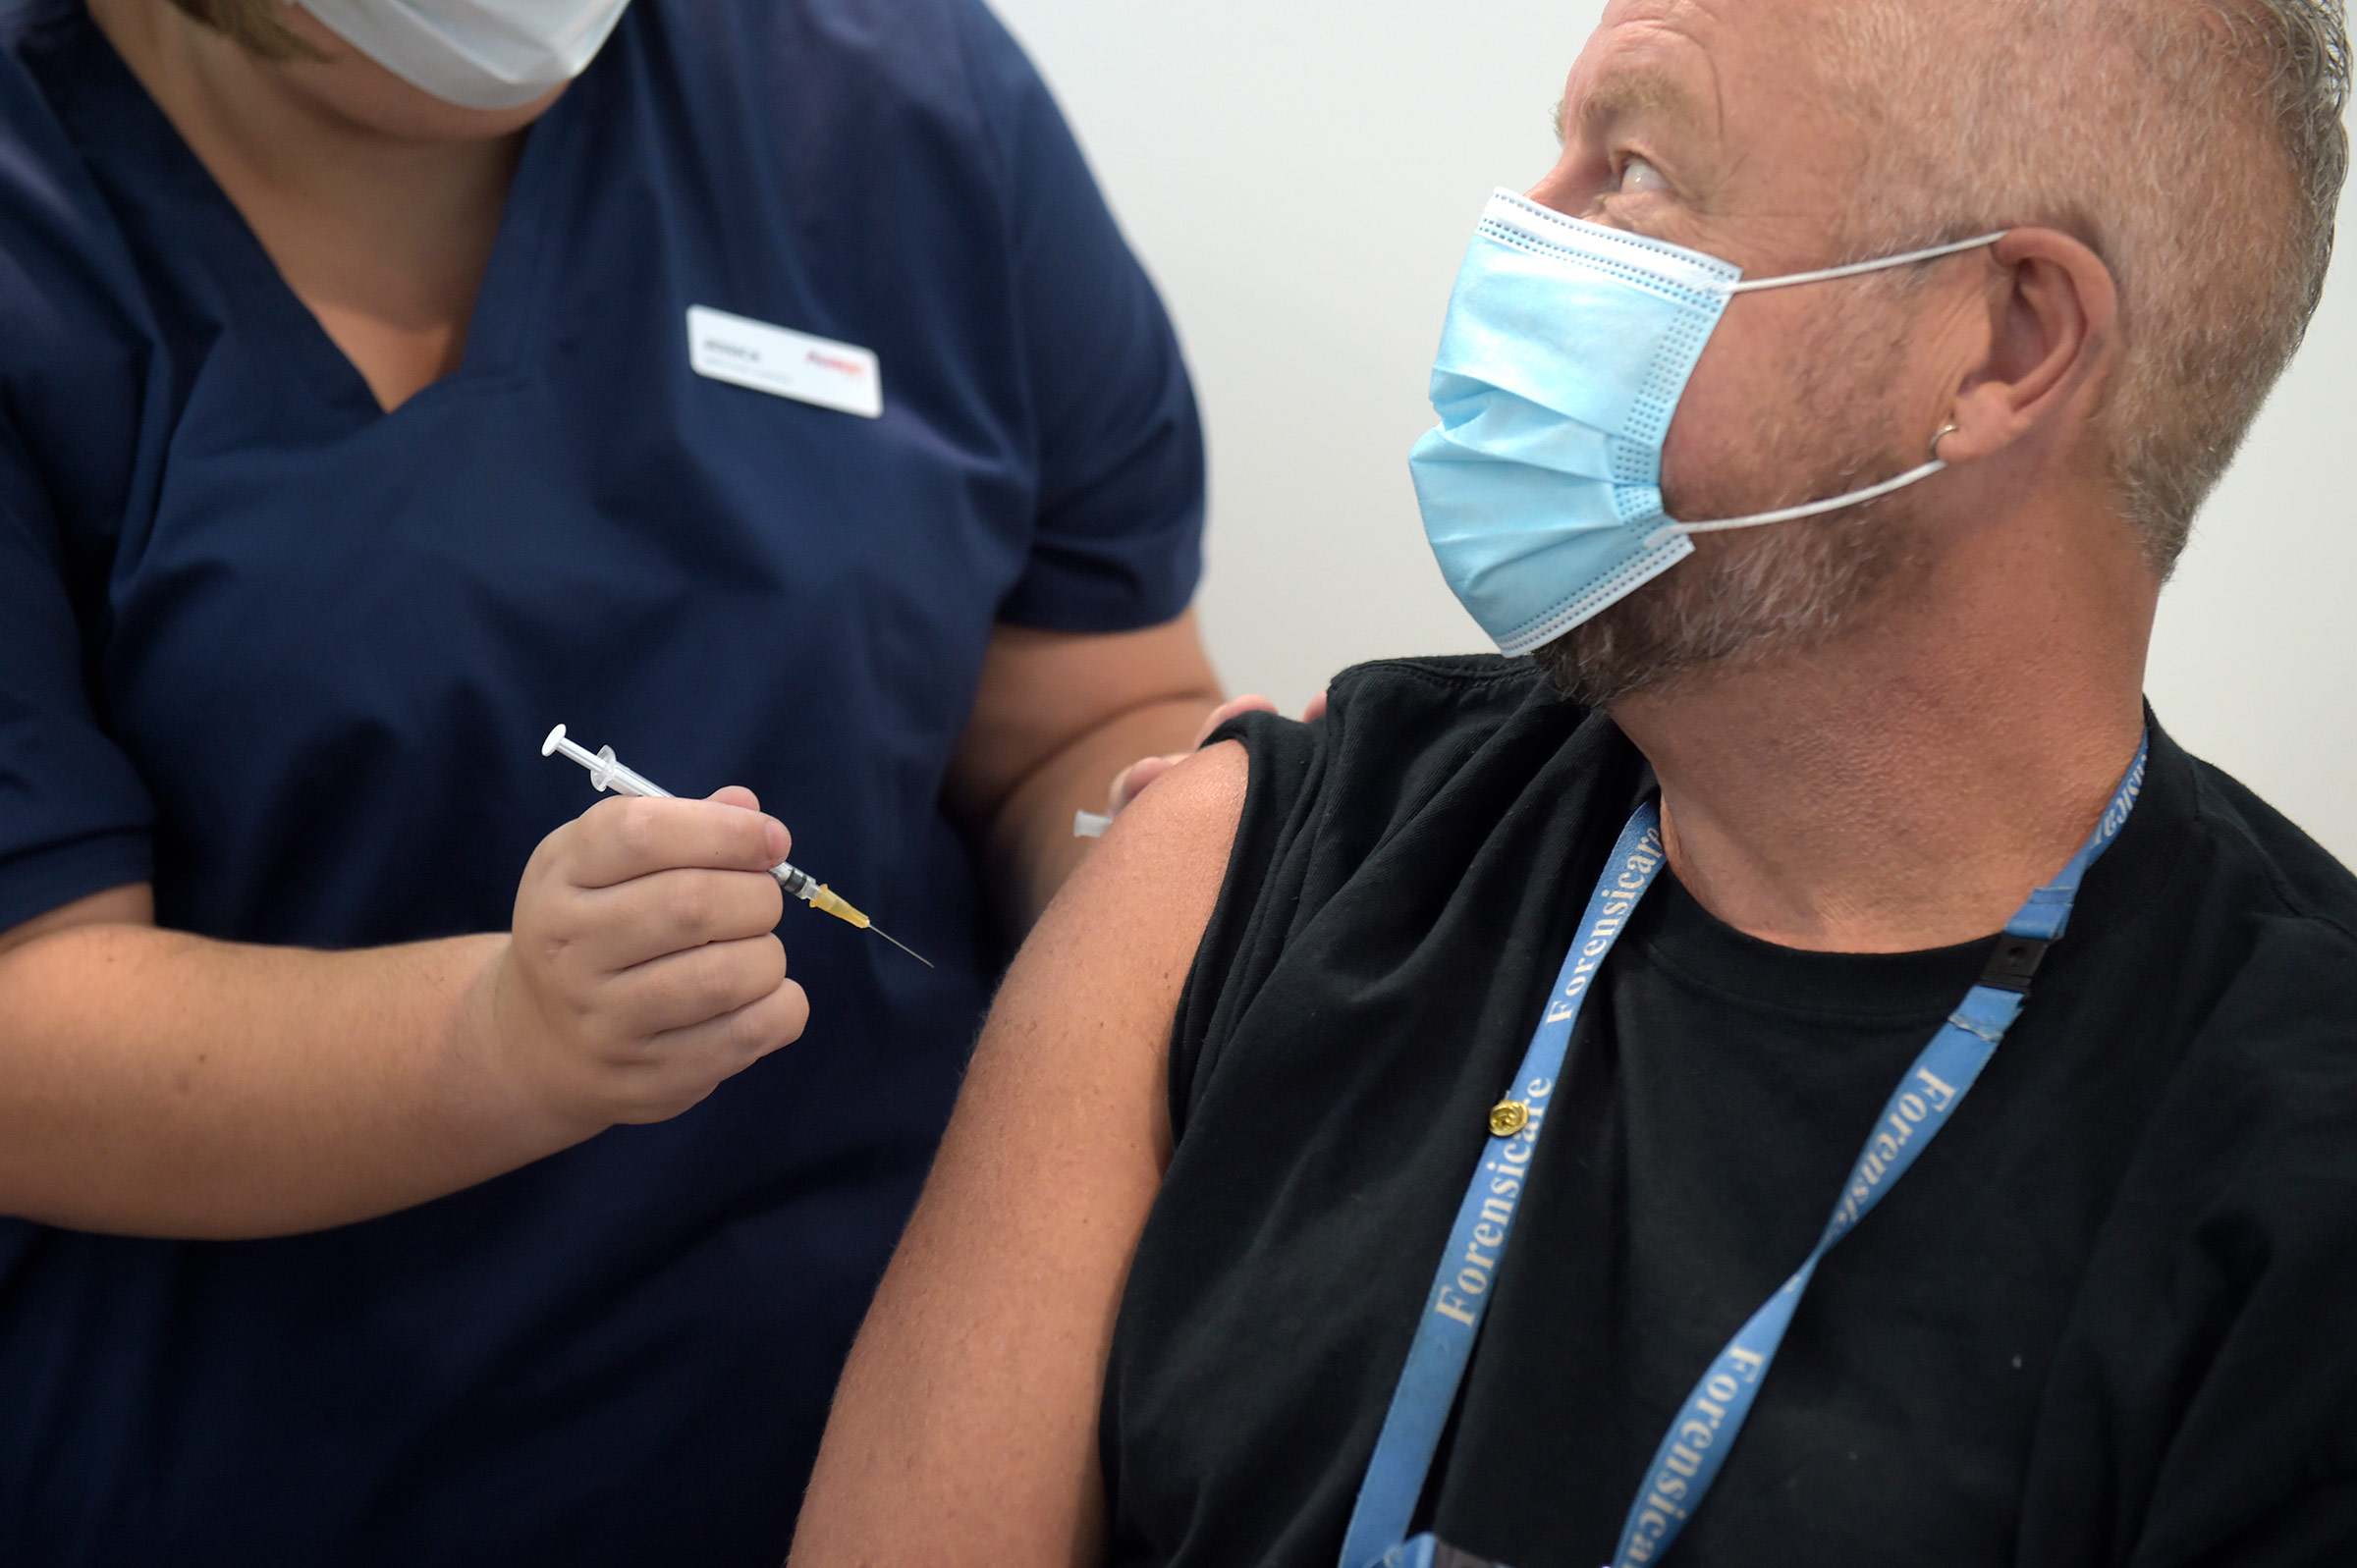 A health worker receives a dose of the Pfizer/BioNTech Covid-19 vaccine in Melbourne, Australia, on Monday, February 22.